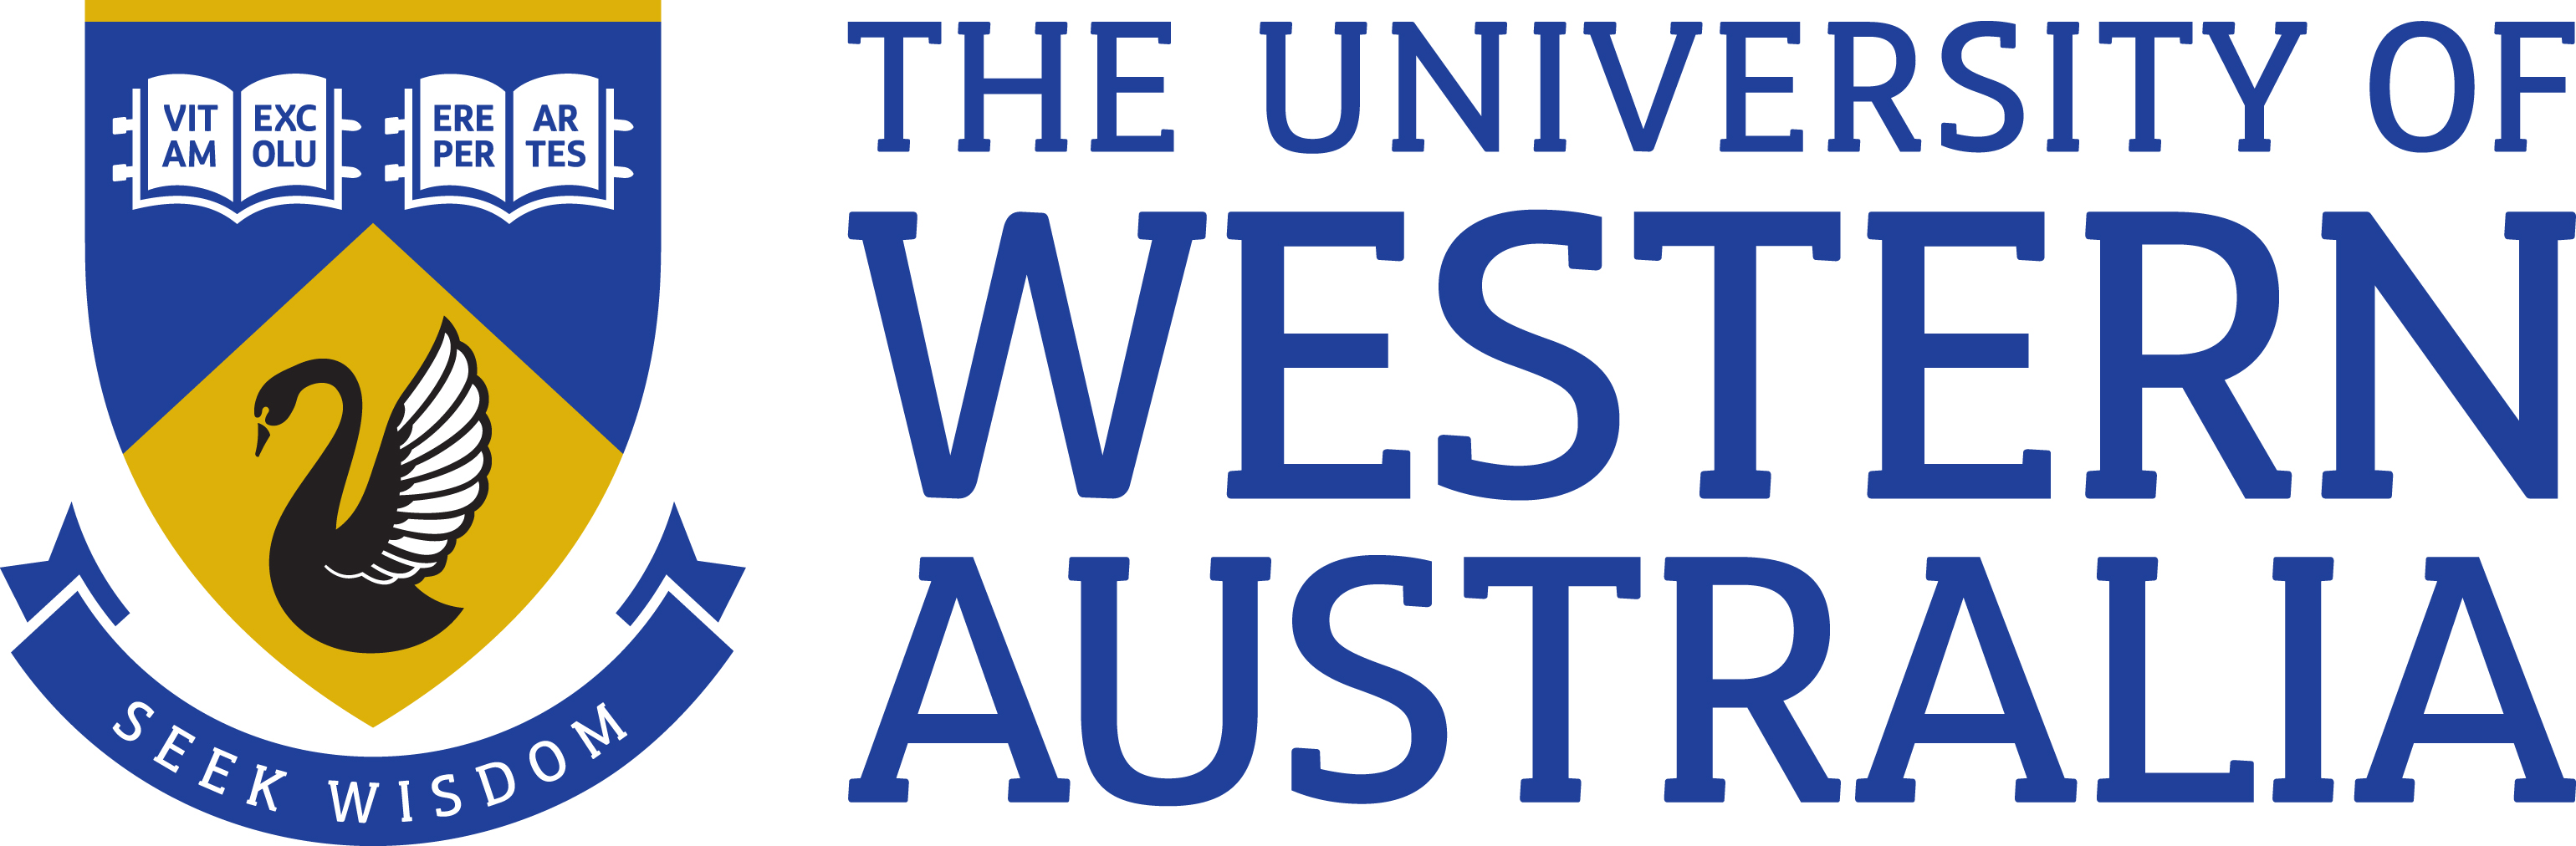 The University of Western Australia logo